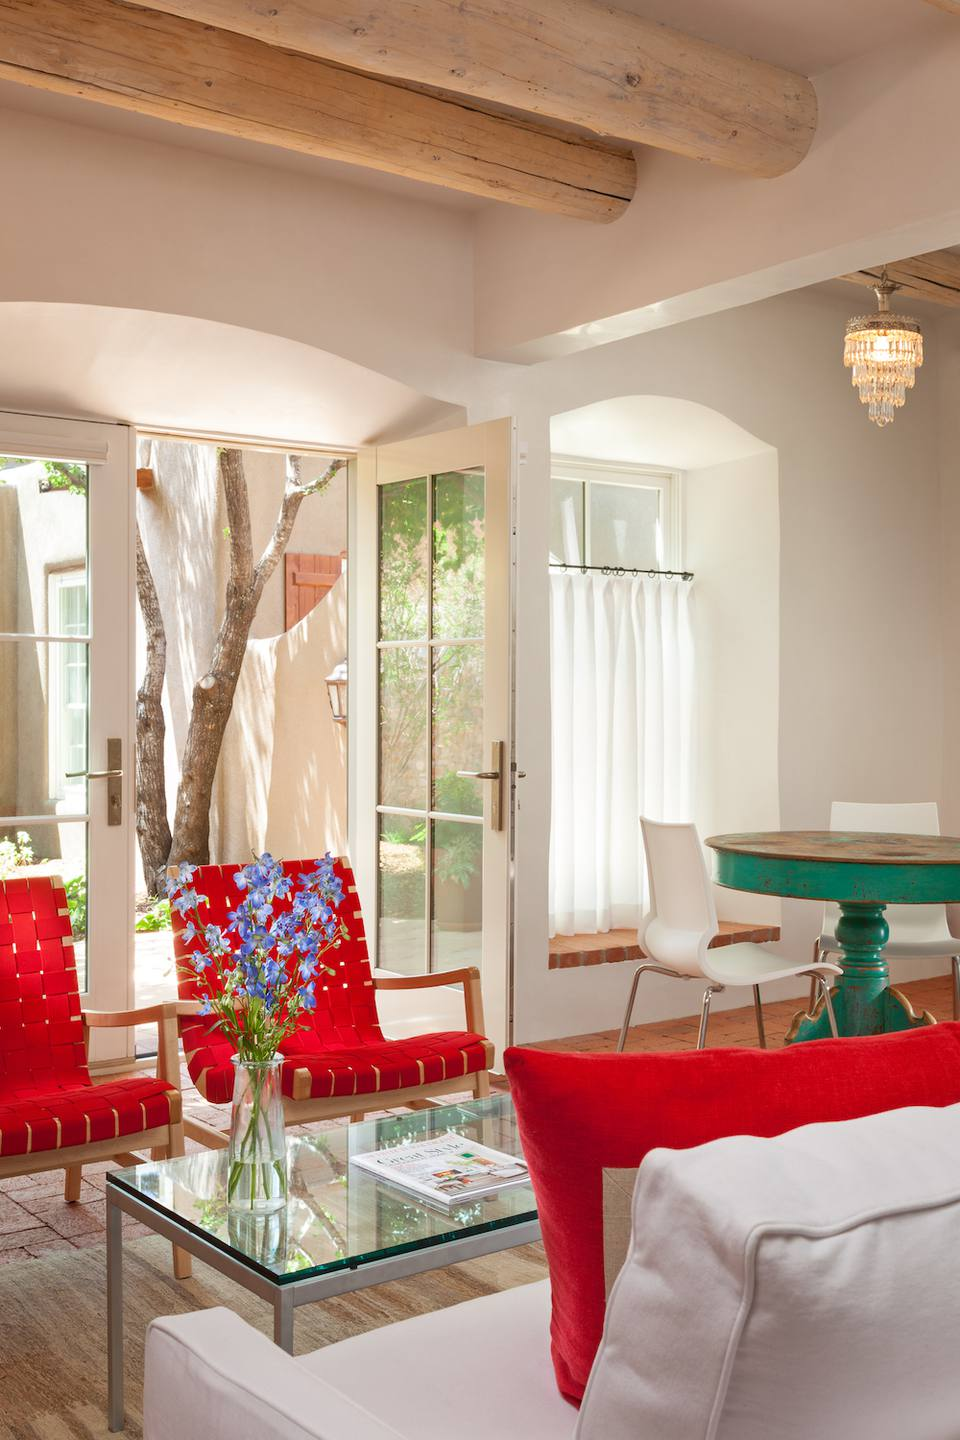 Tour A Colorful Family Home In Santa Fe